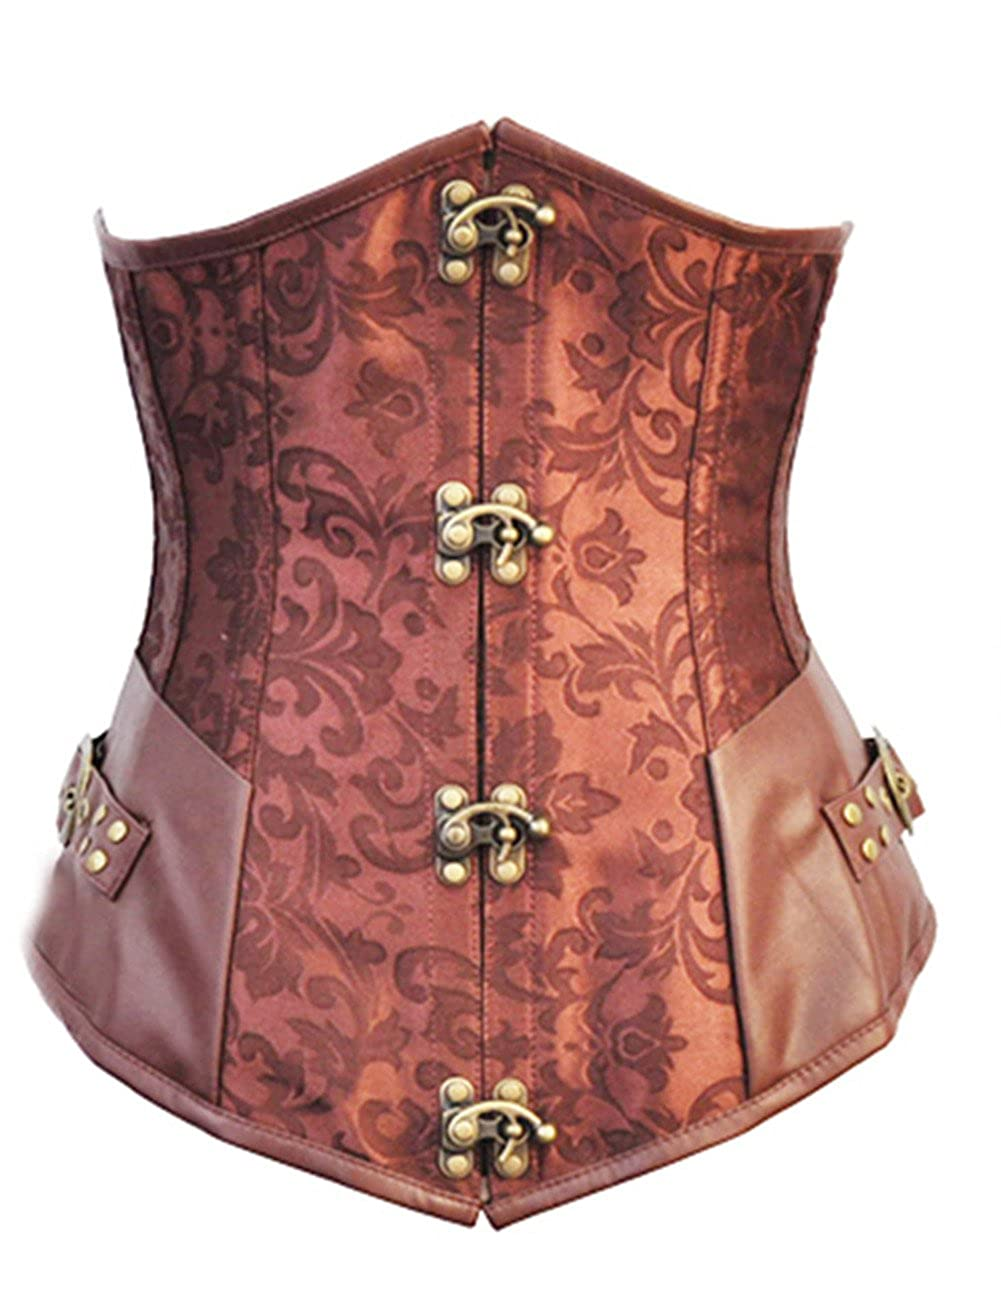 Women's Retro Goth Steel Boned Brocade Vintage Steampunk Corset Bustier Top